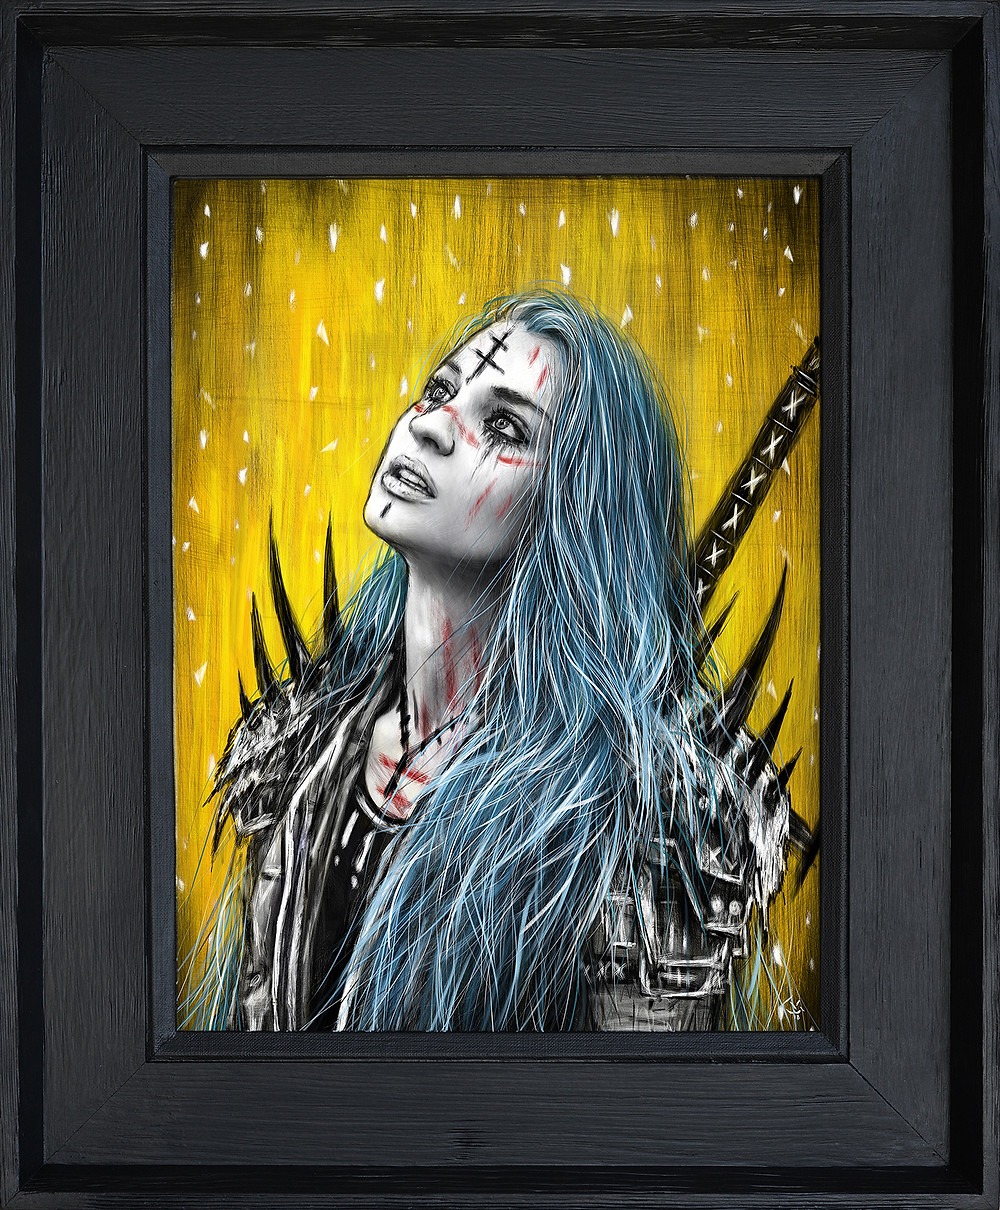 Gothic Fantasy Original Artwork by Justin Gedak